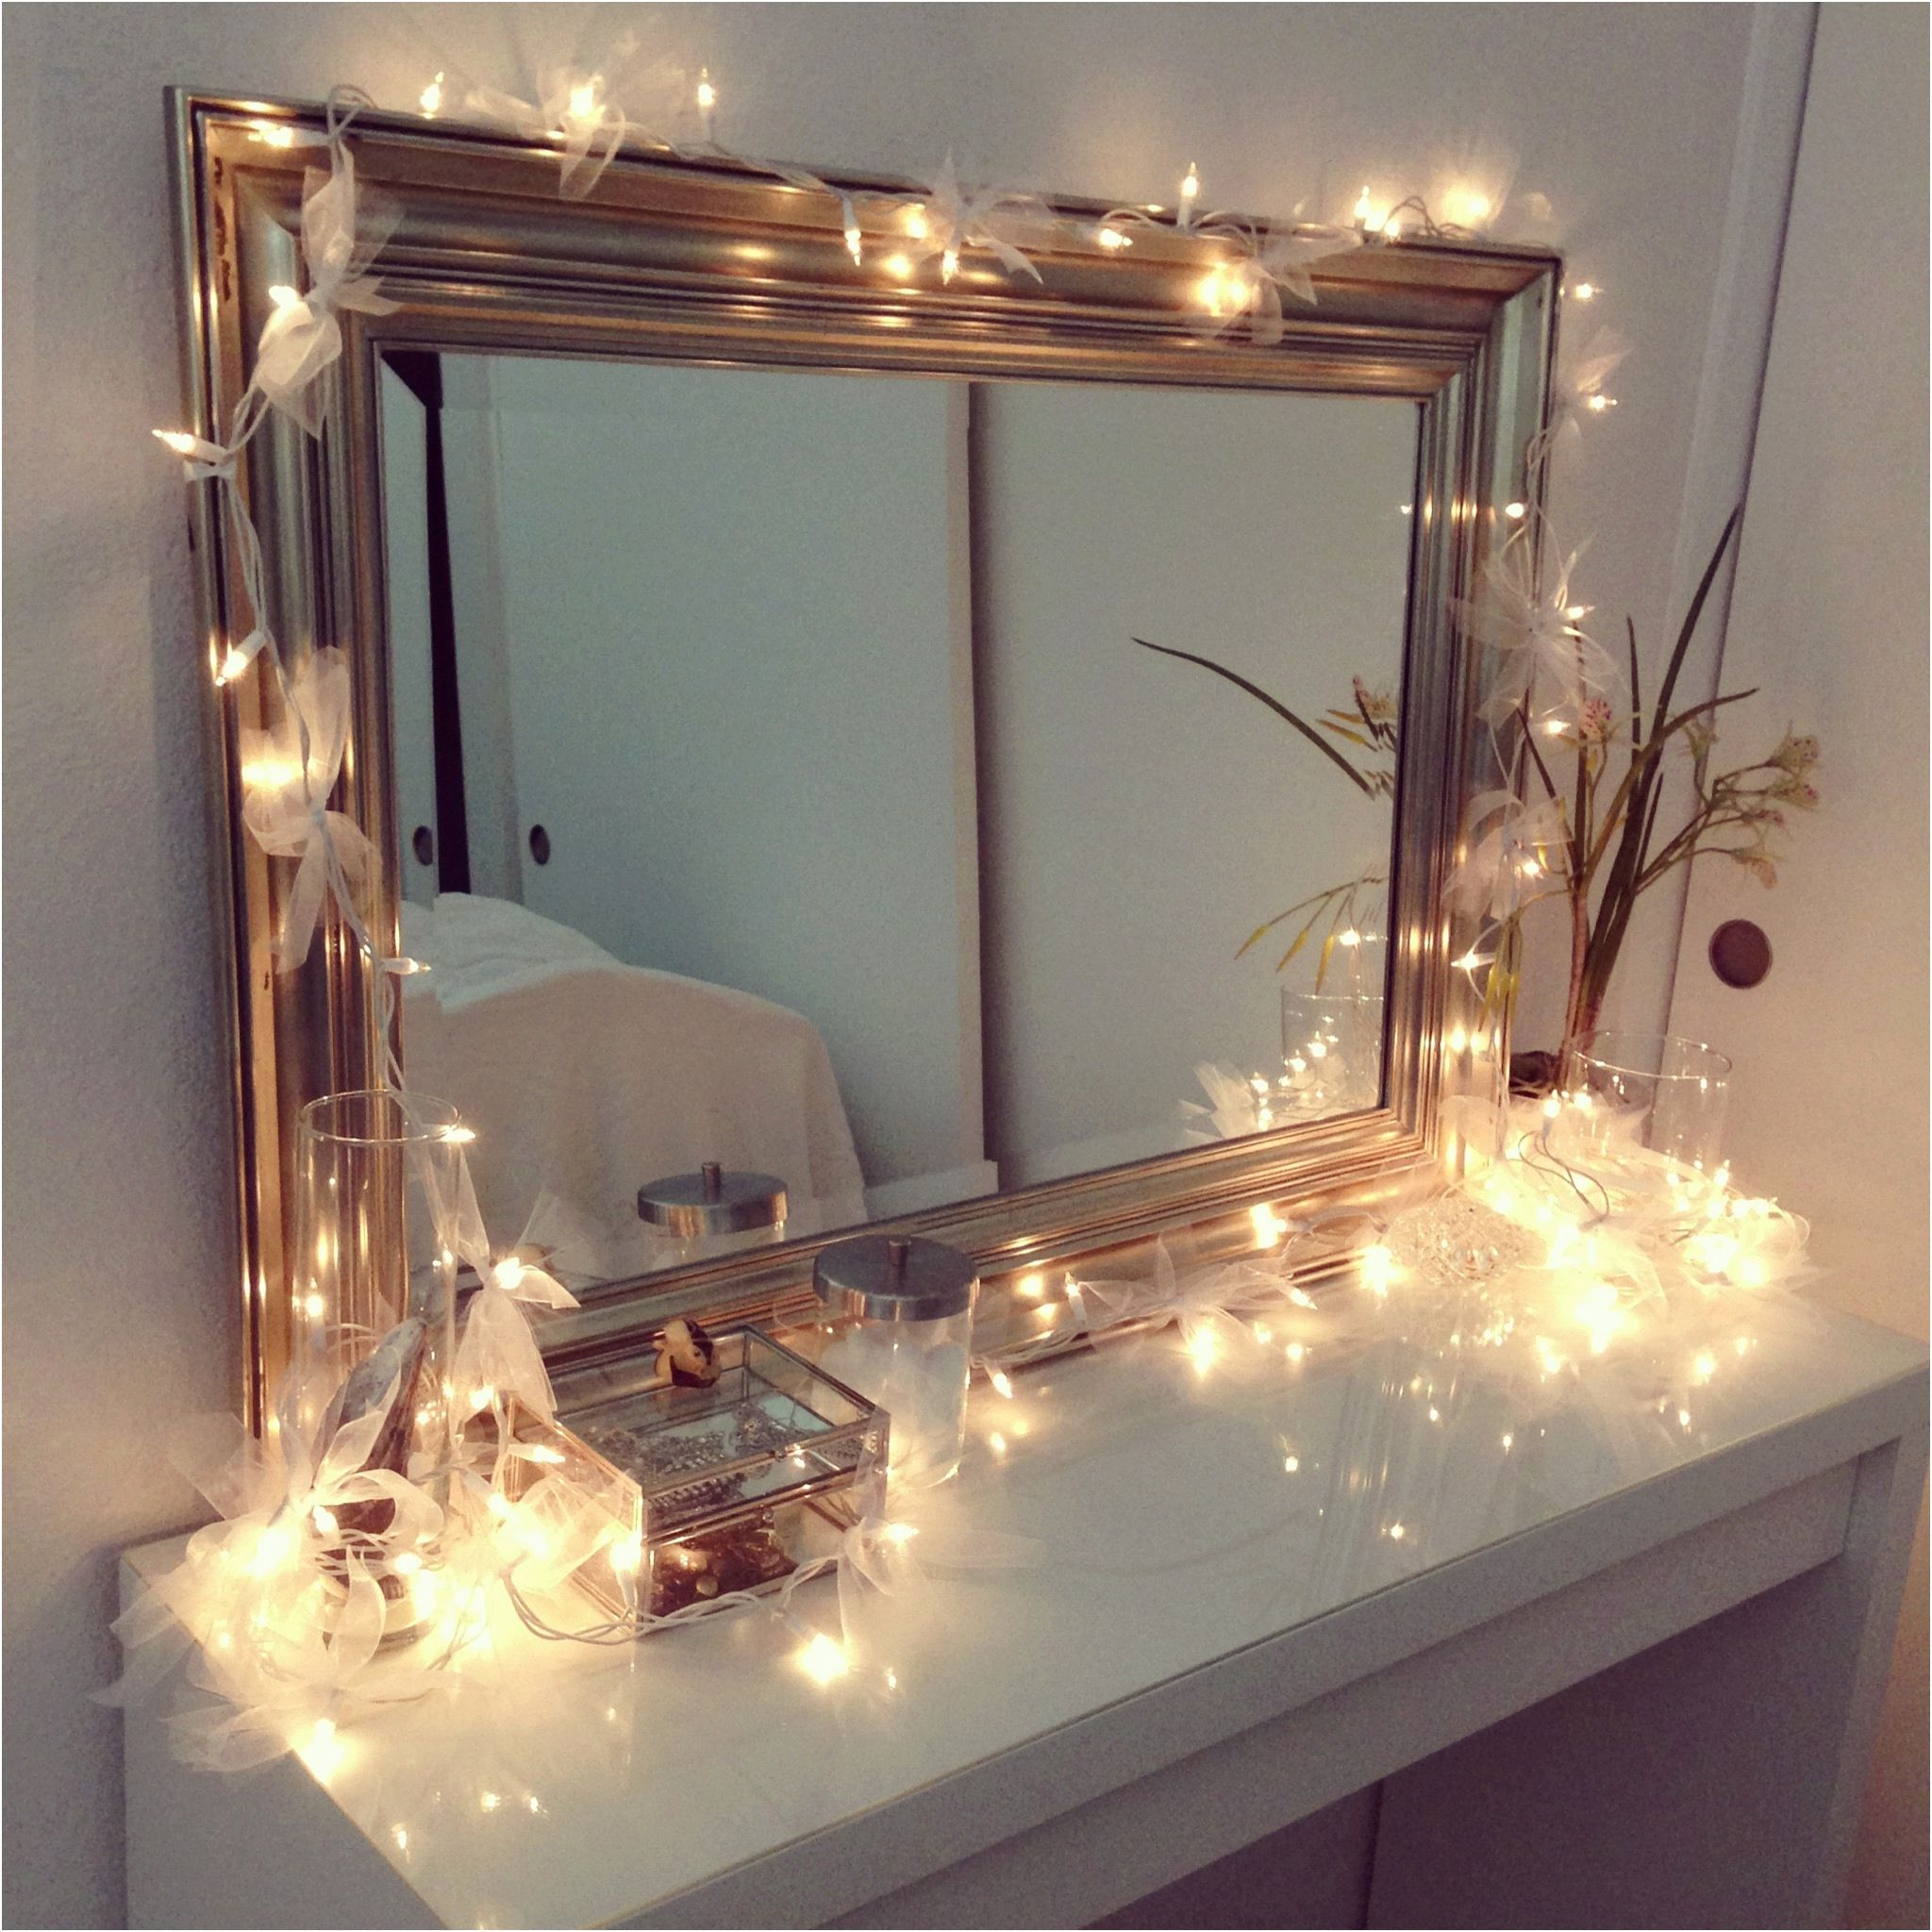 Fairy Lights In Bedroom Inspirational Twinkle Lights Around A Full